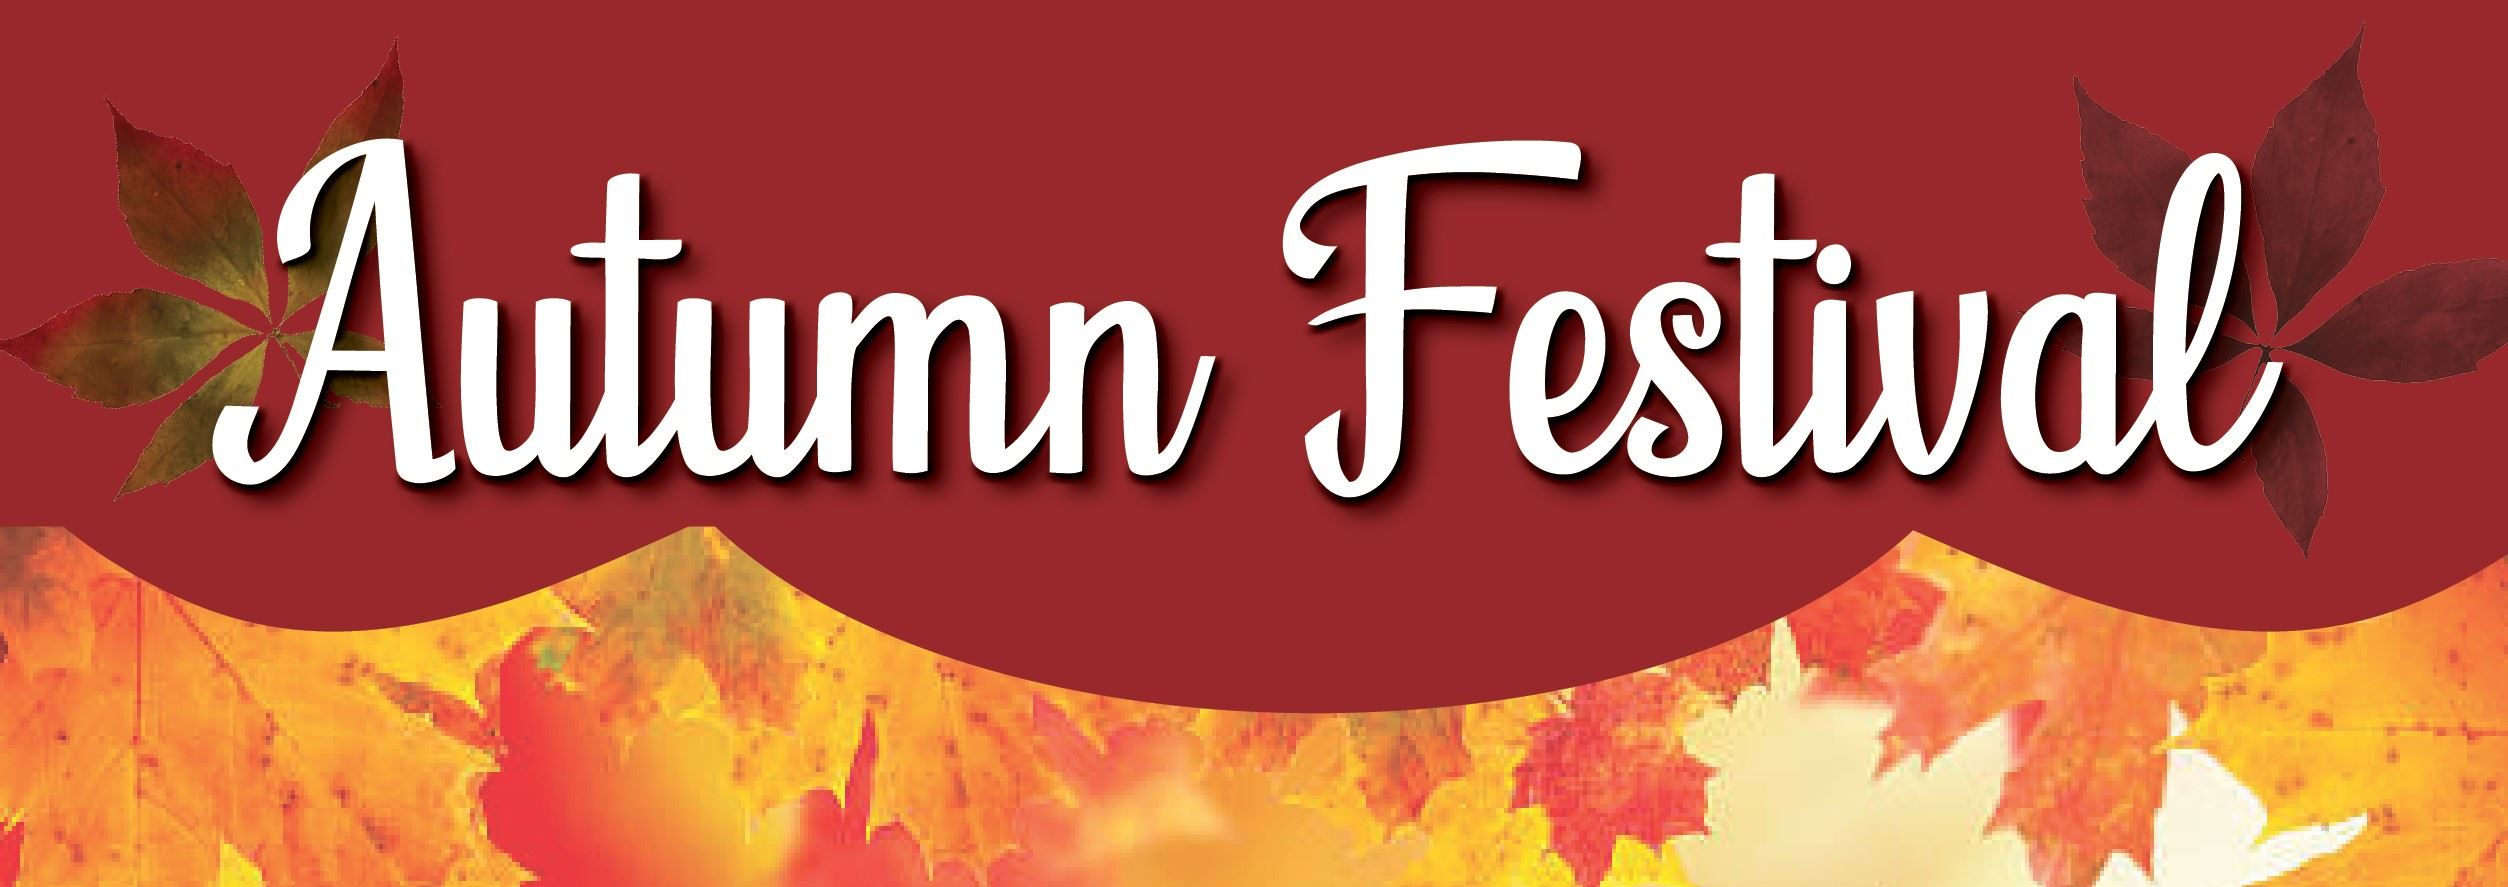 Autumn Fest 2019 - FB event